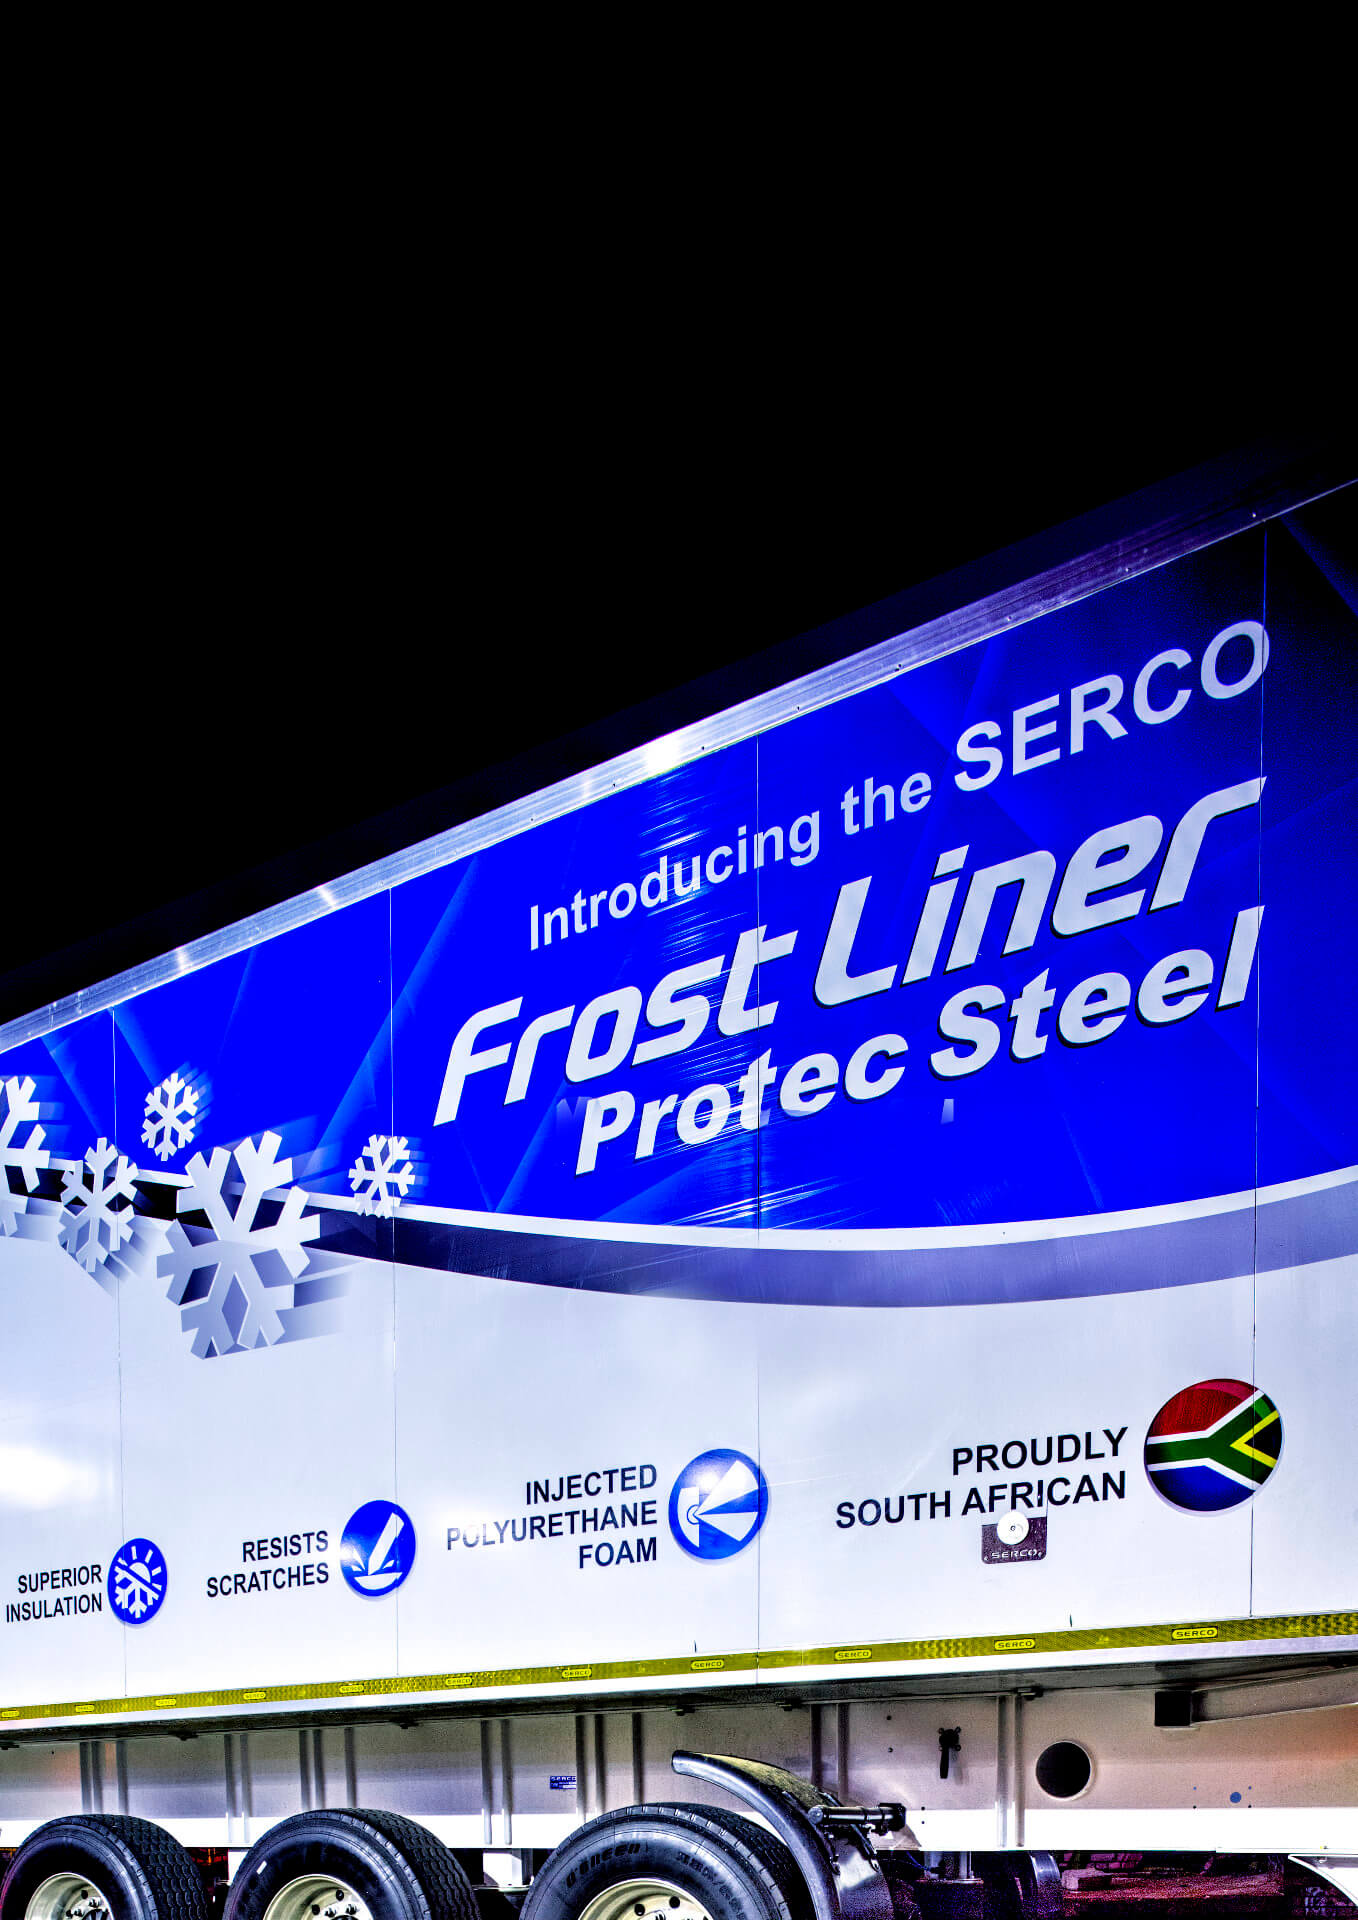 Refrigerated bodies Protec Steel frost liner